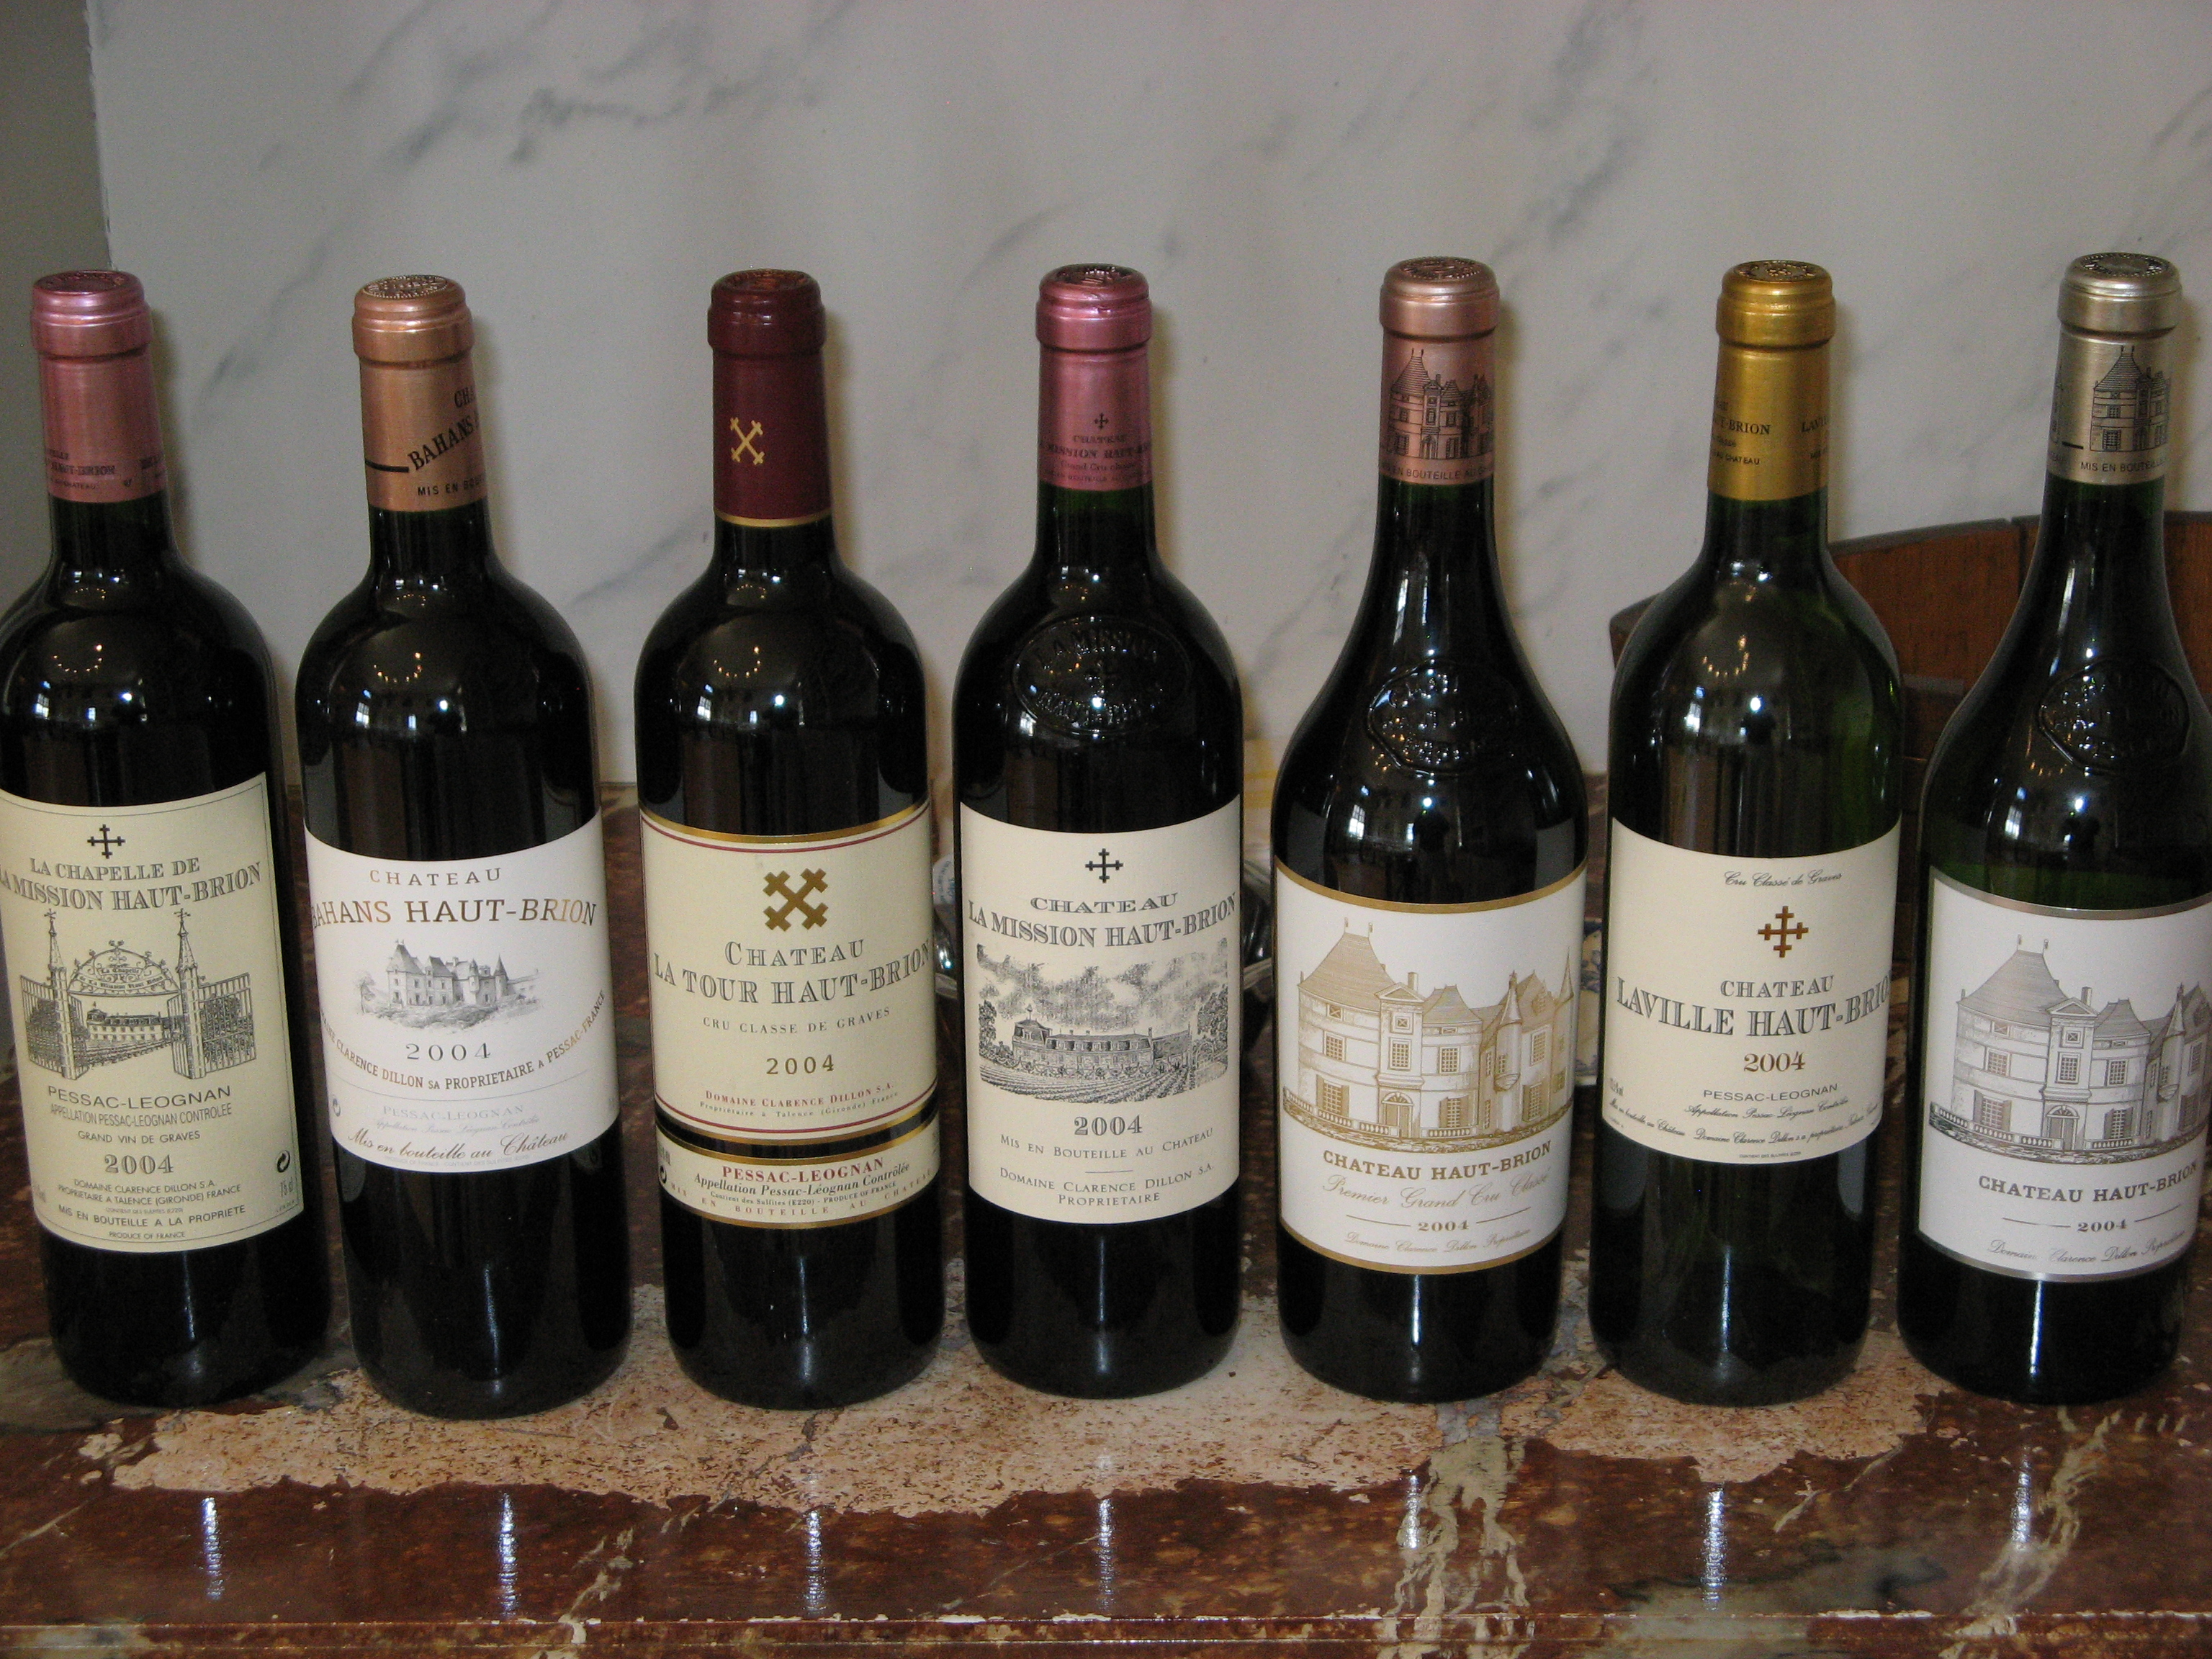 A wine appraisals expert performed wine valuations at Chateau Haut Brion.